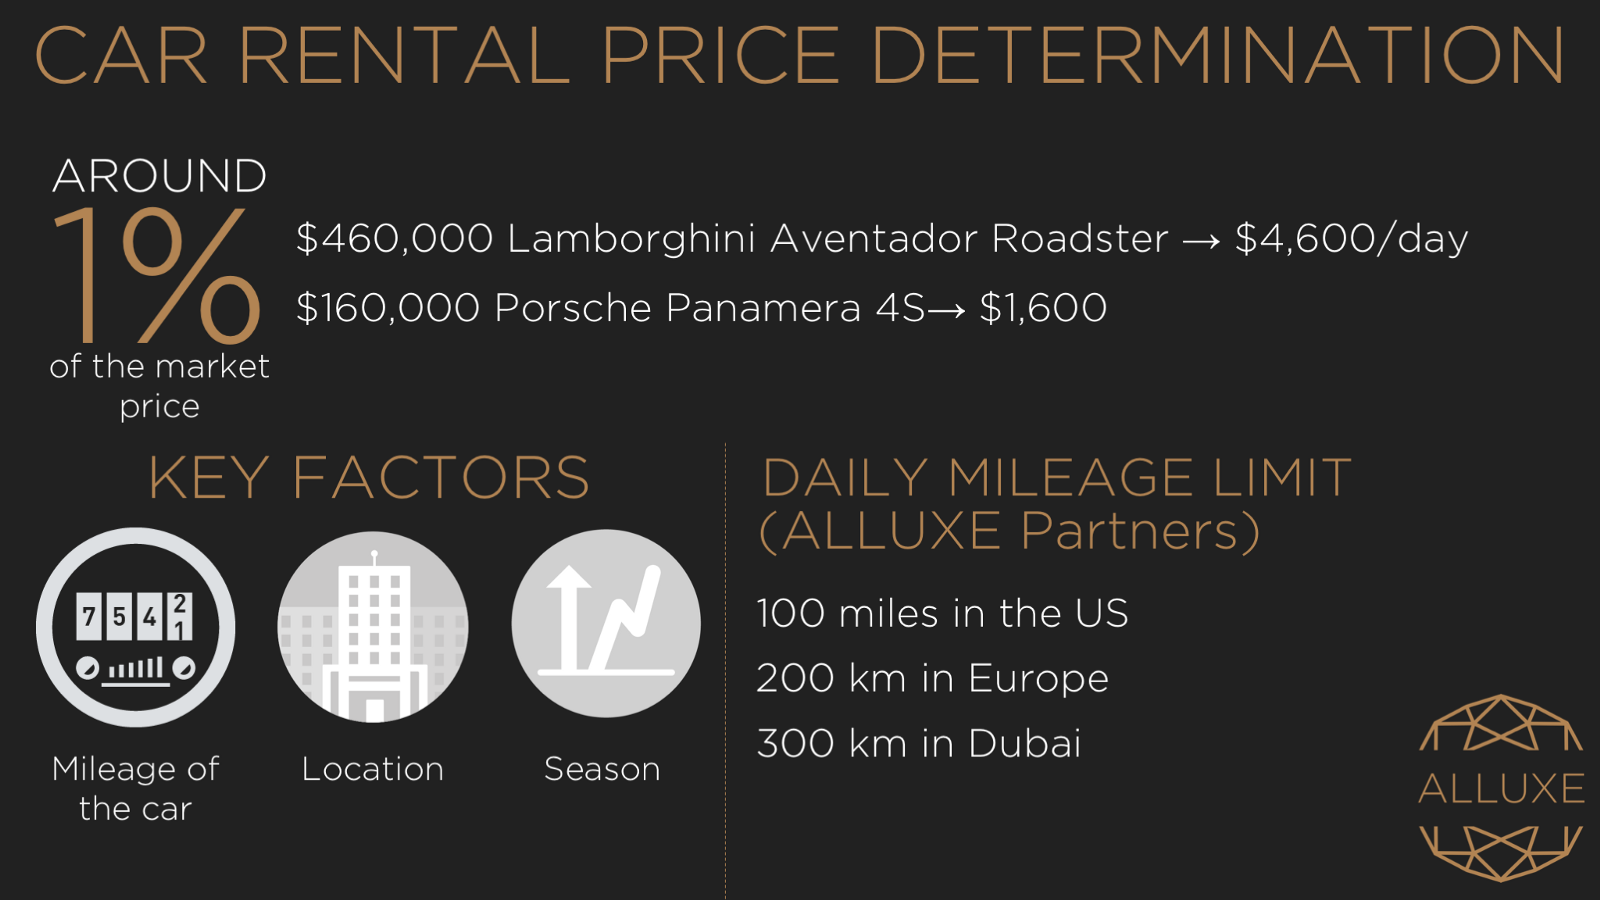 How Is The Price For Luxury Car Rental Determined Alluxe Luxury